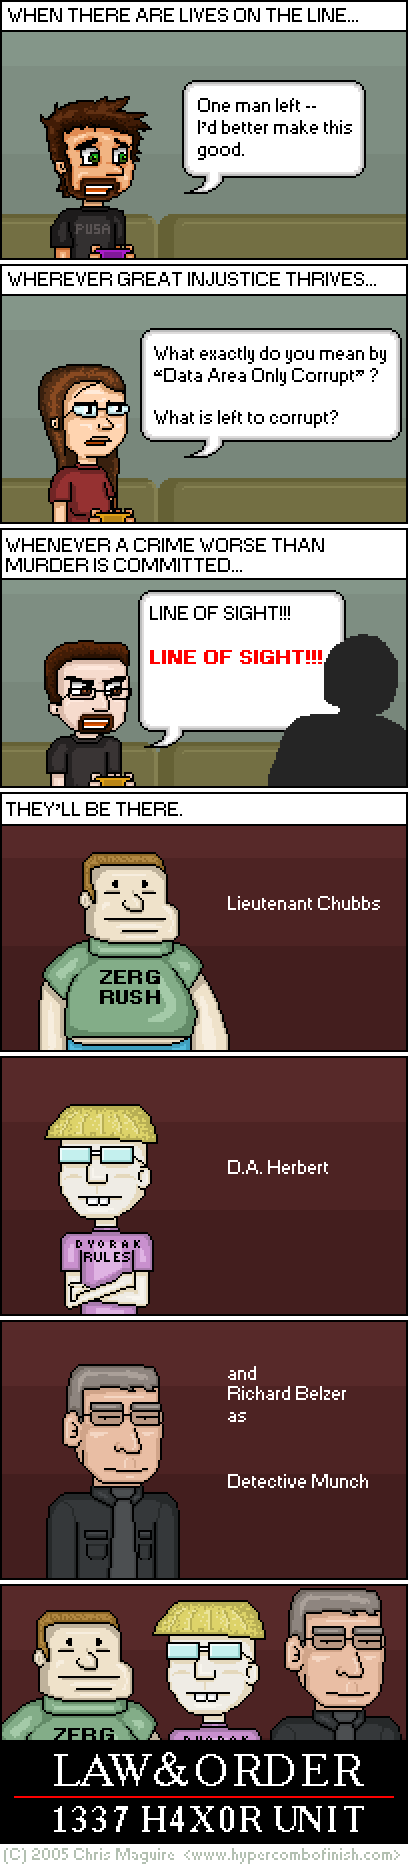 Hypercombofinish Comic #17 by Chris Maguire